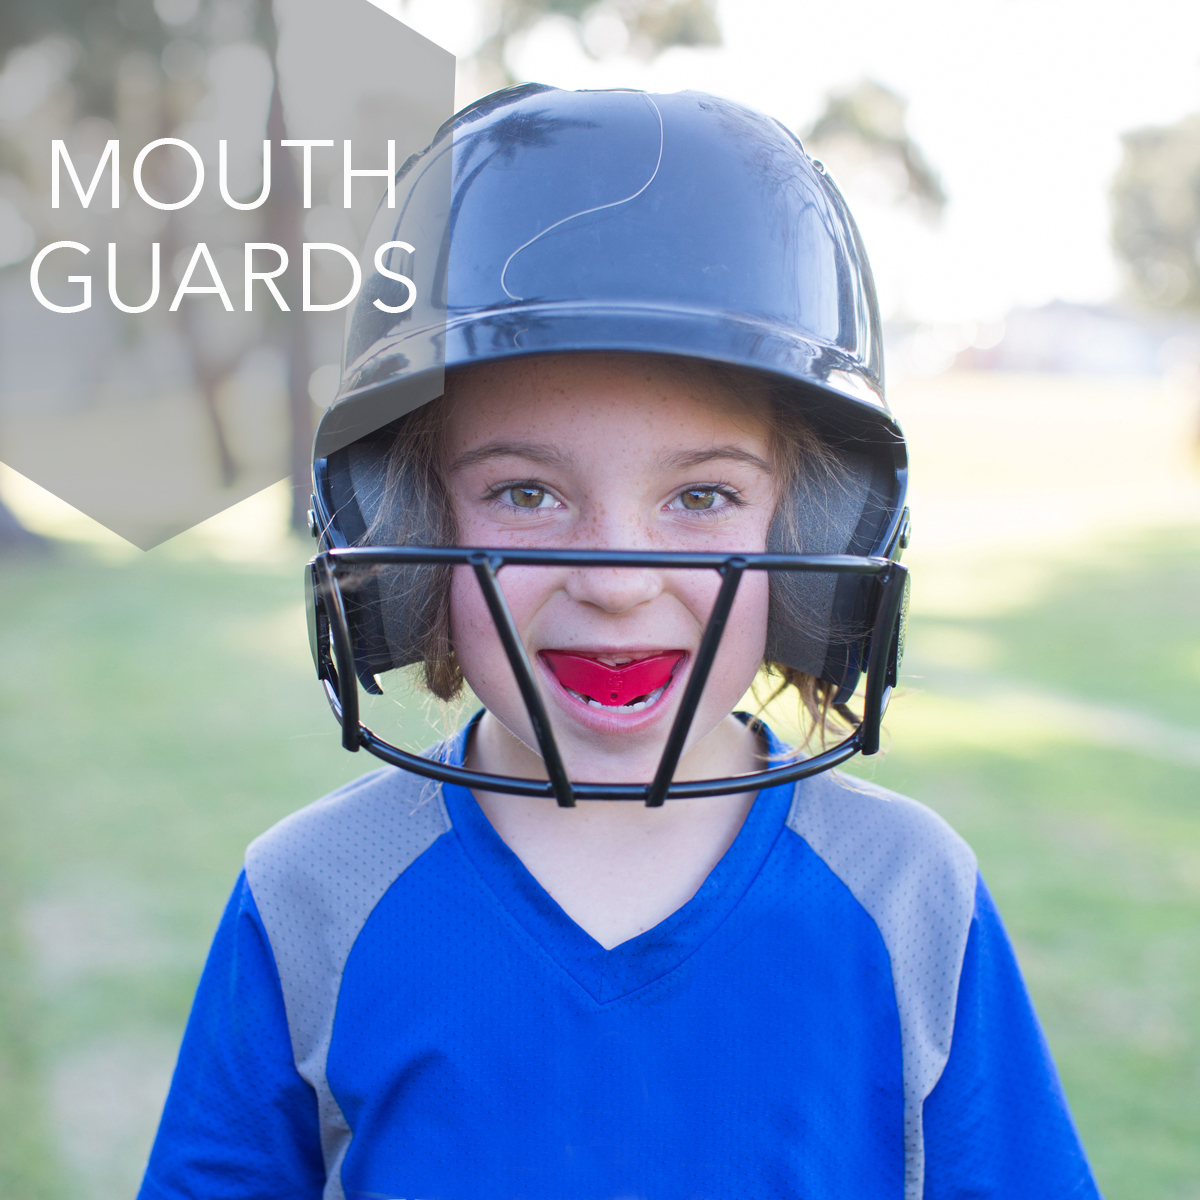 SPRINGFIELD MOUTH GUARD.jpg